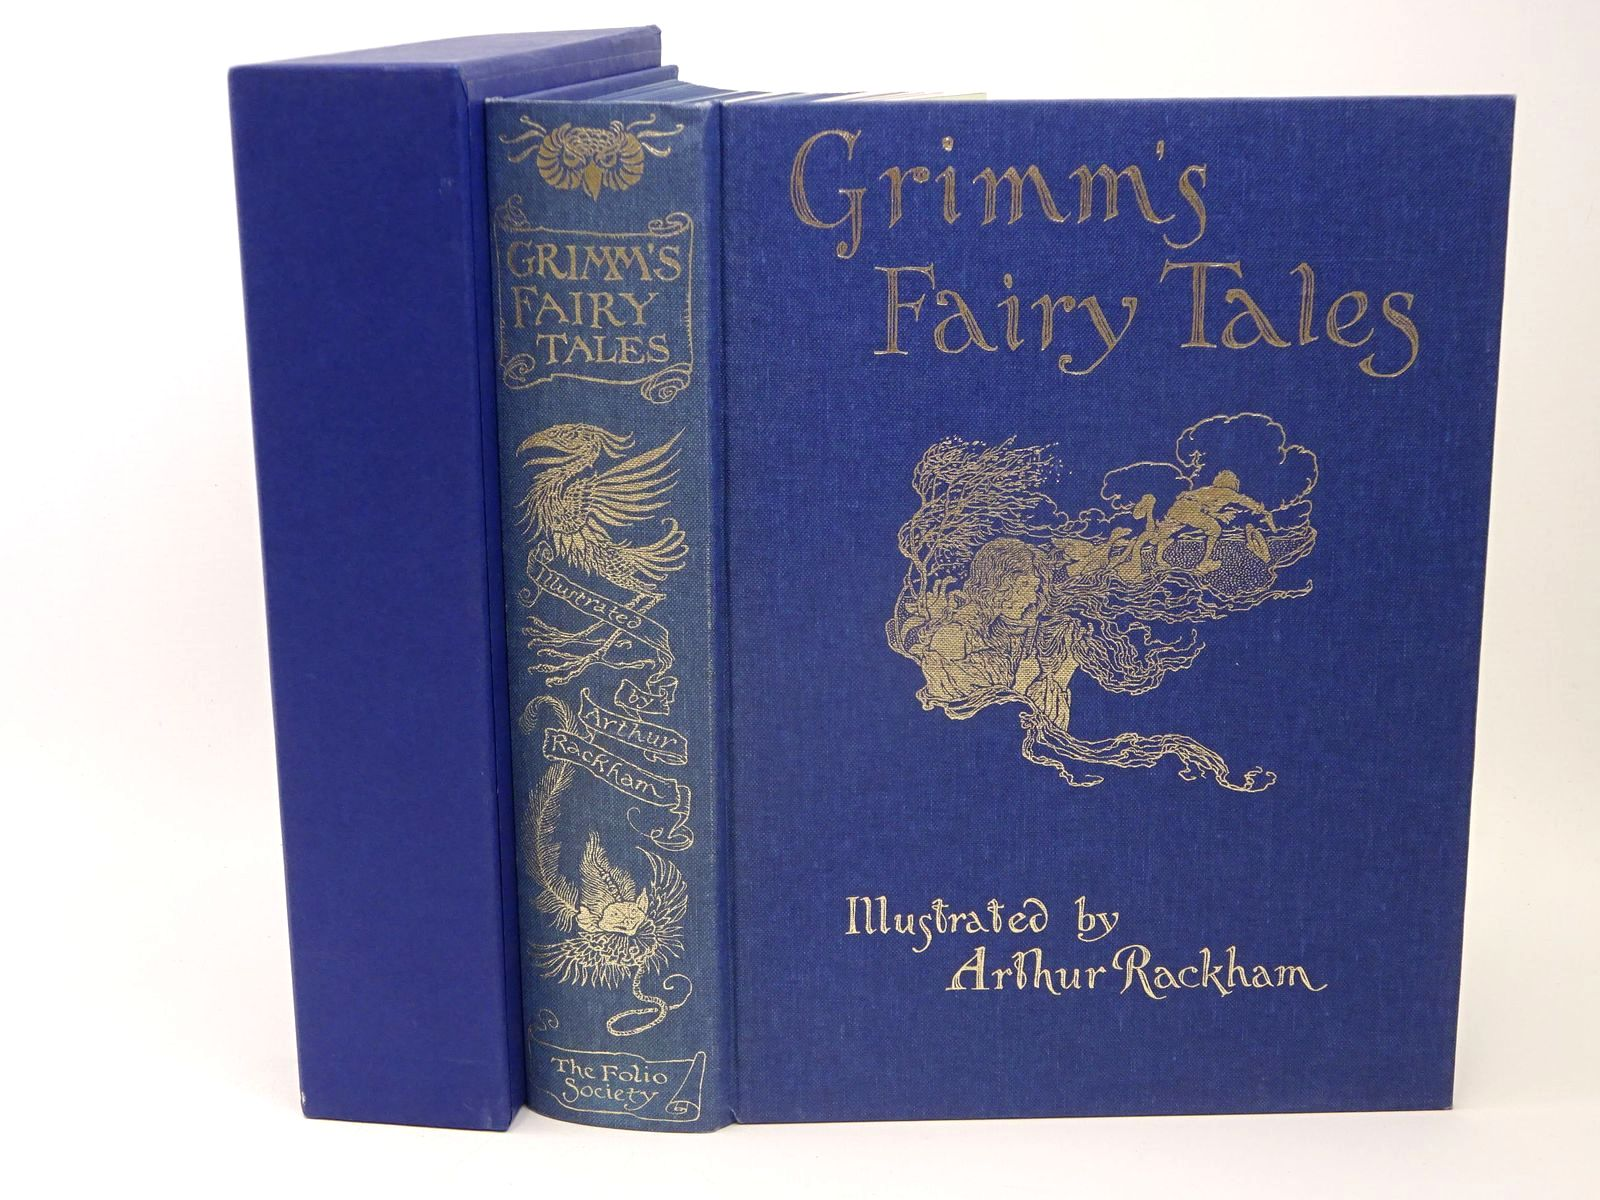 Photo of THE FAIRY TALES OF THE BROTHERS GRIMM written by Grimm, Brothers illustrated by Rackham, Arthur published by Folio Society (STOCK CODE: 1317743)  for sale by Stella & Rose's Books